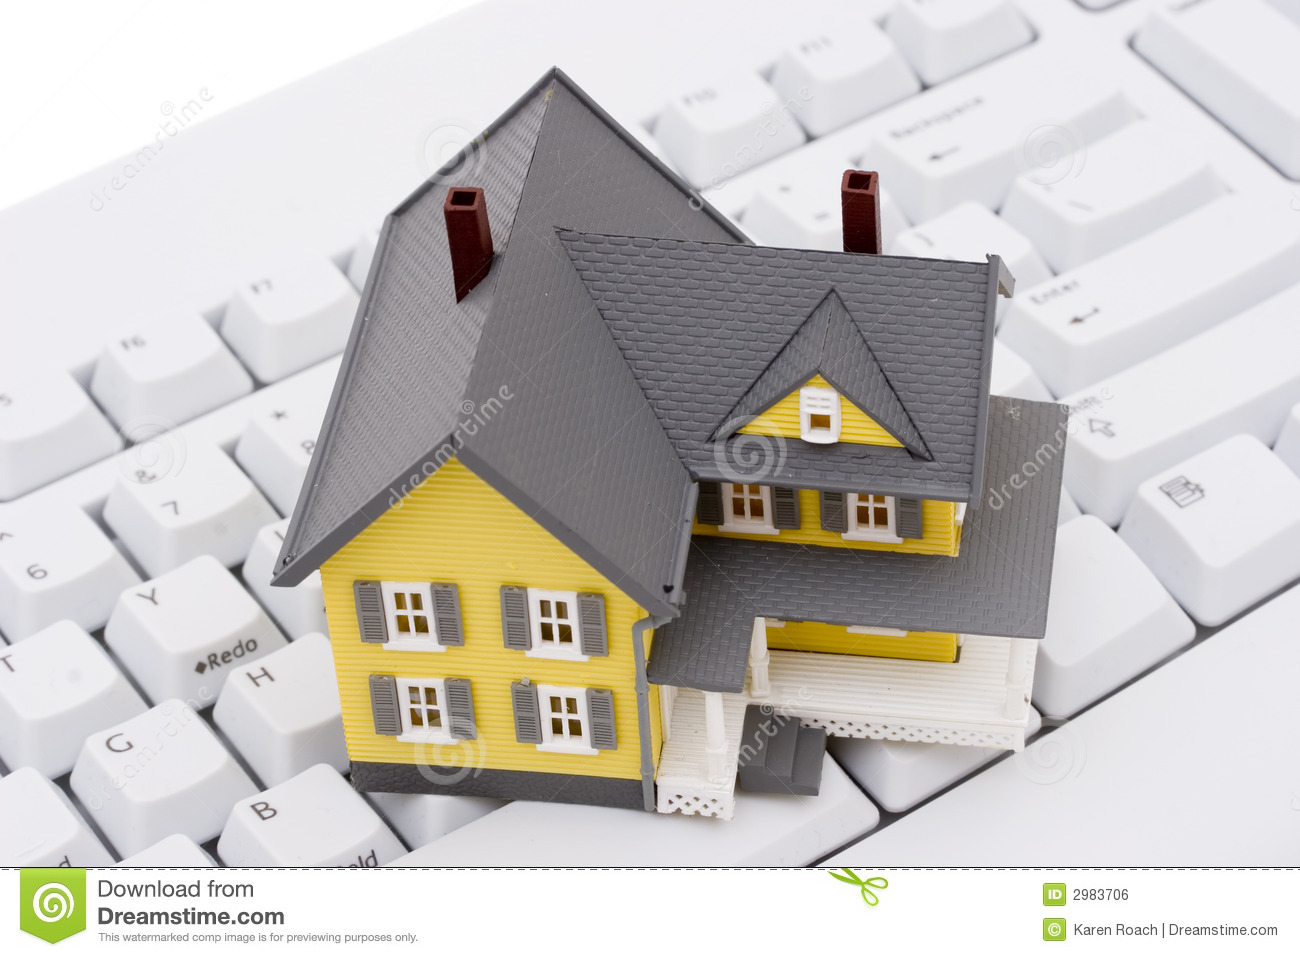 Real Estate On The Internet Royalty Free Stock Image